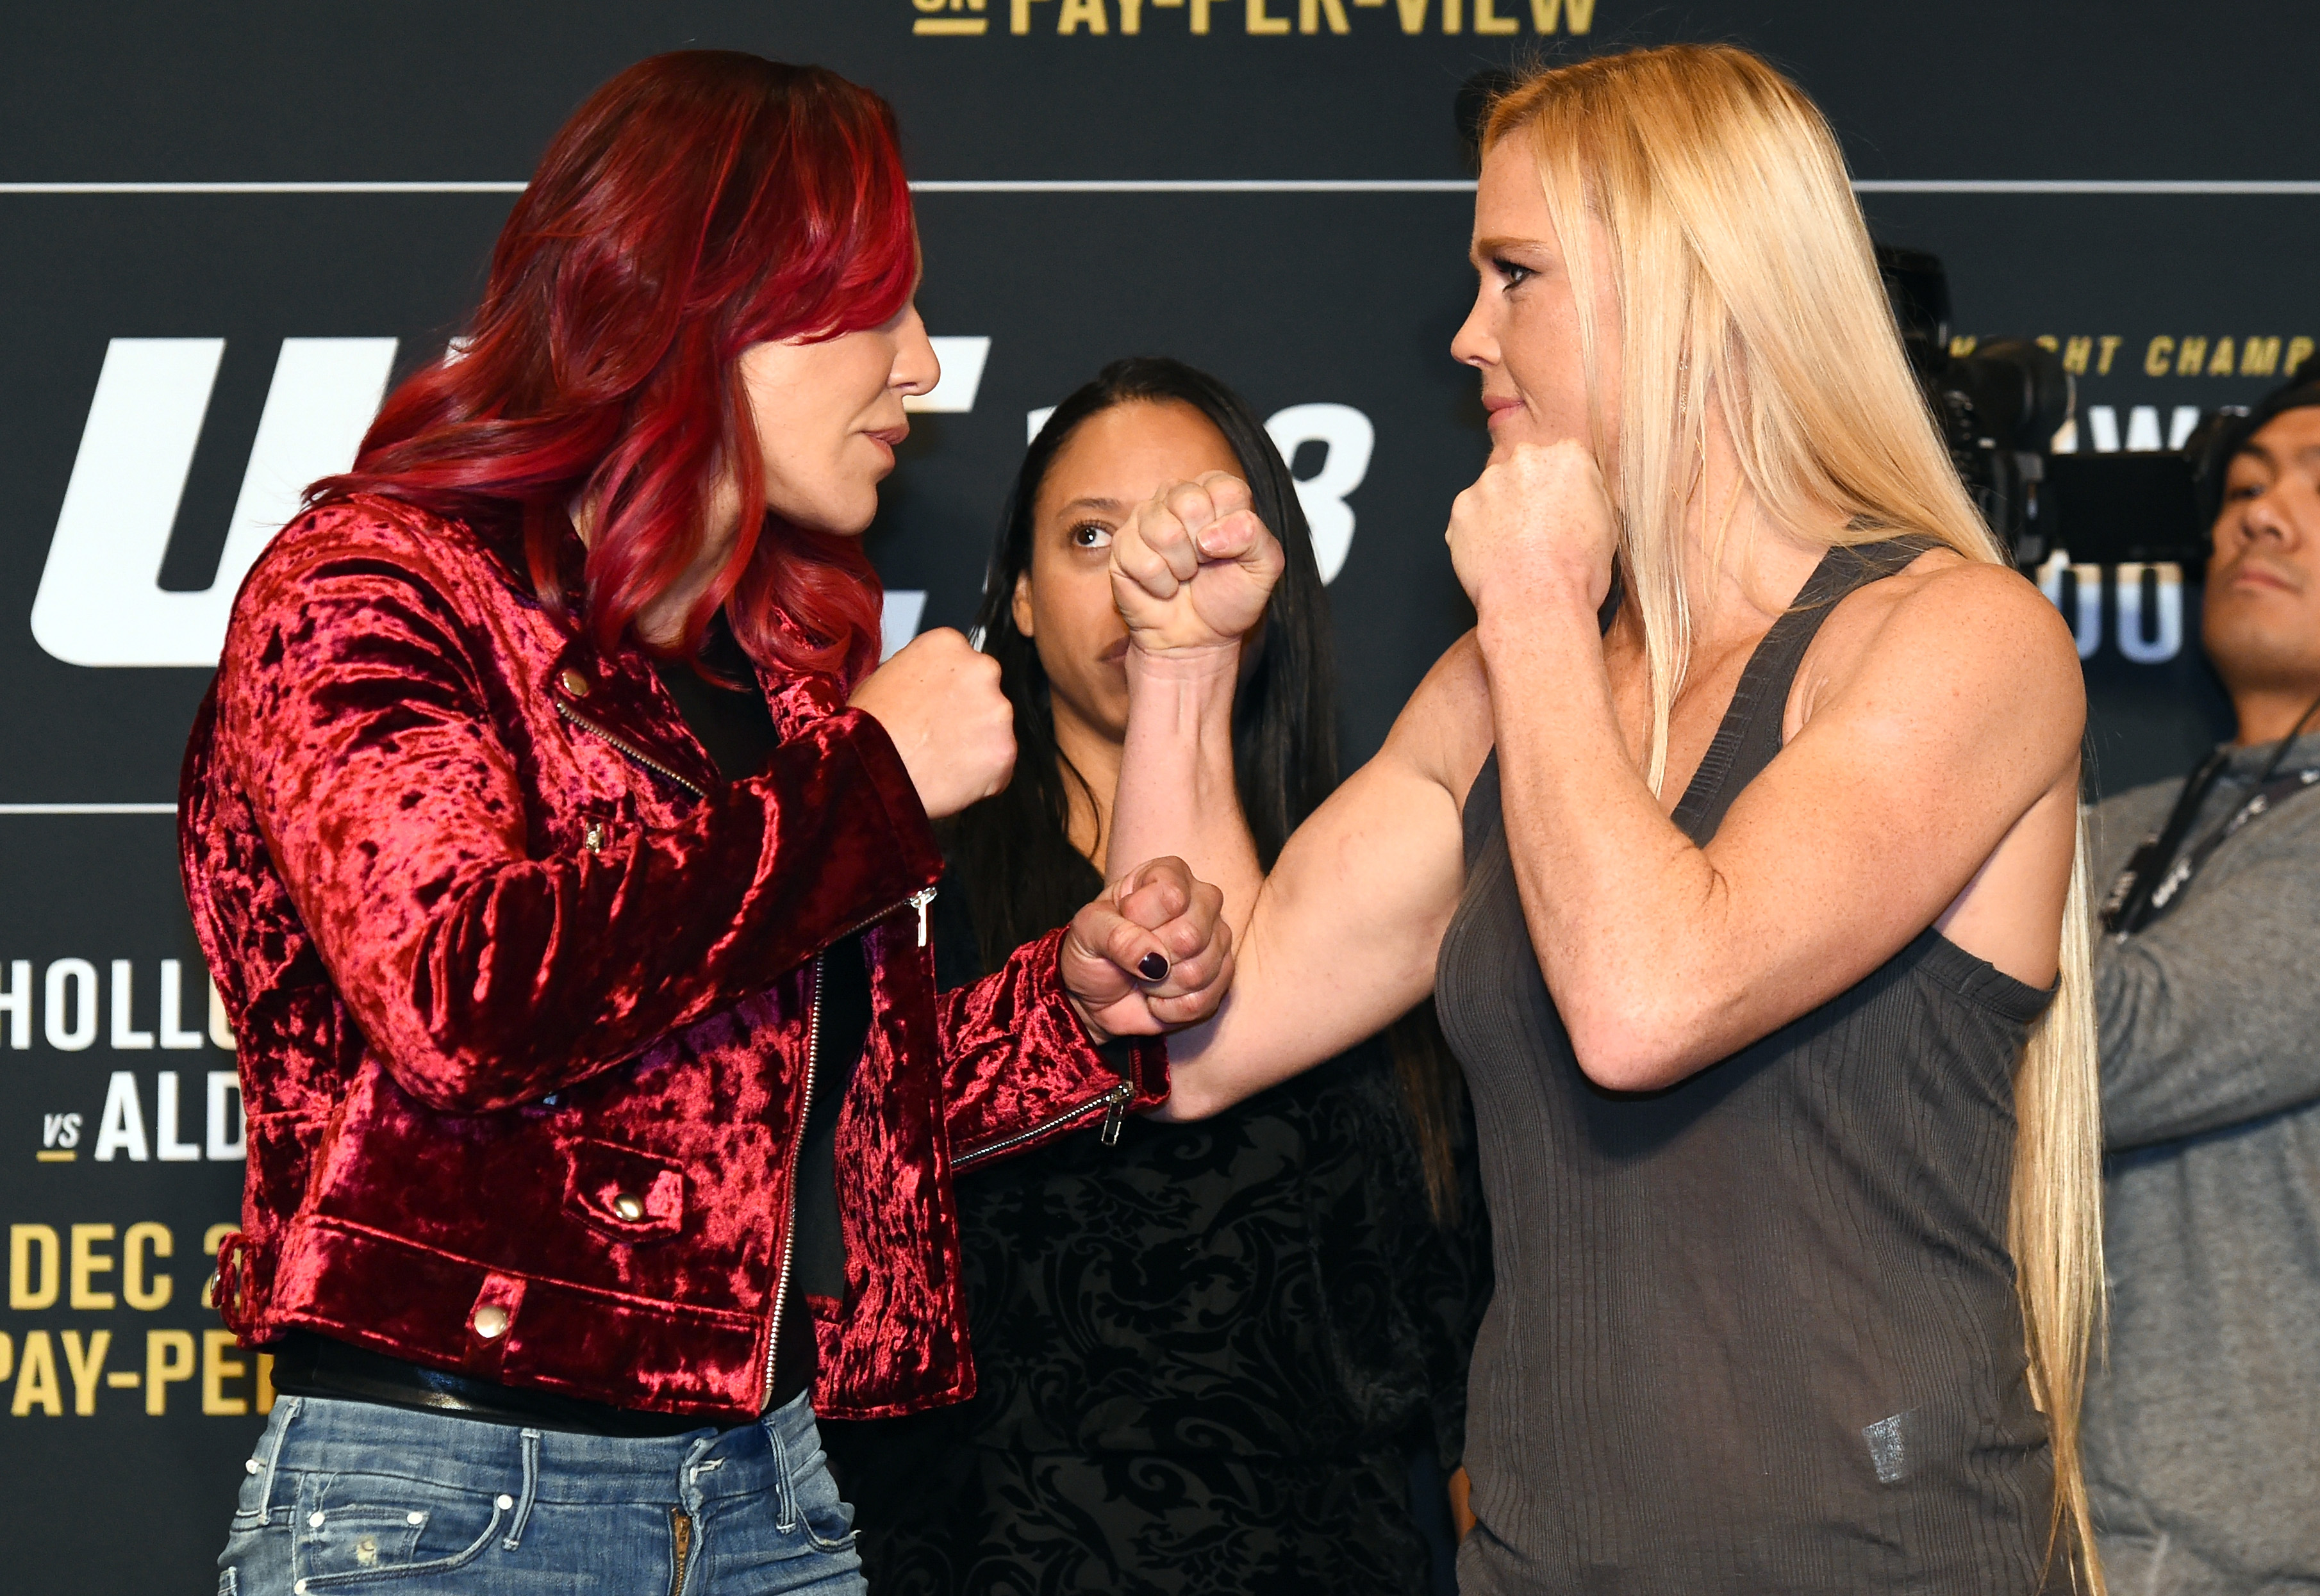 UFC 219: Holly Holm's coach Mike Winkeljohn thinks she'll shock the world